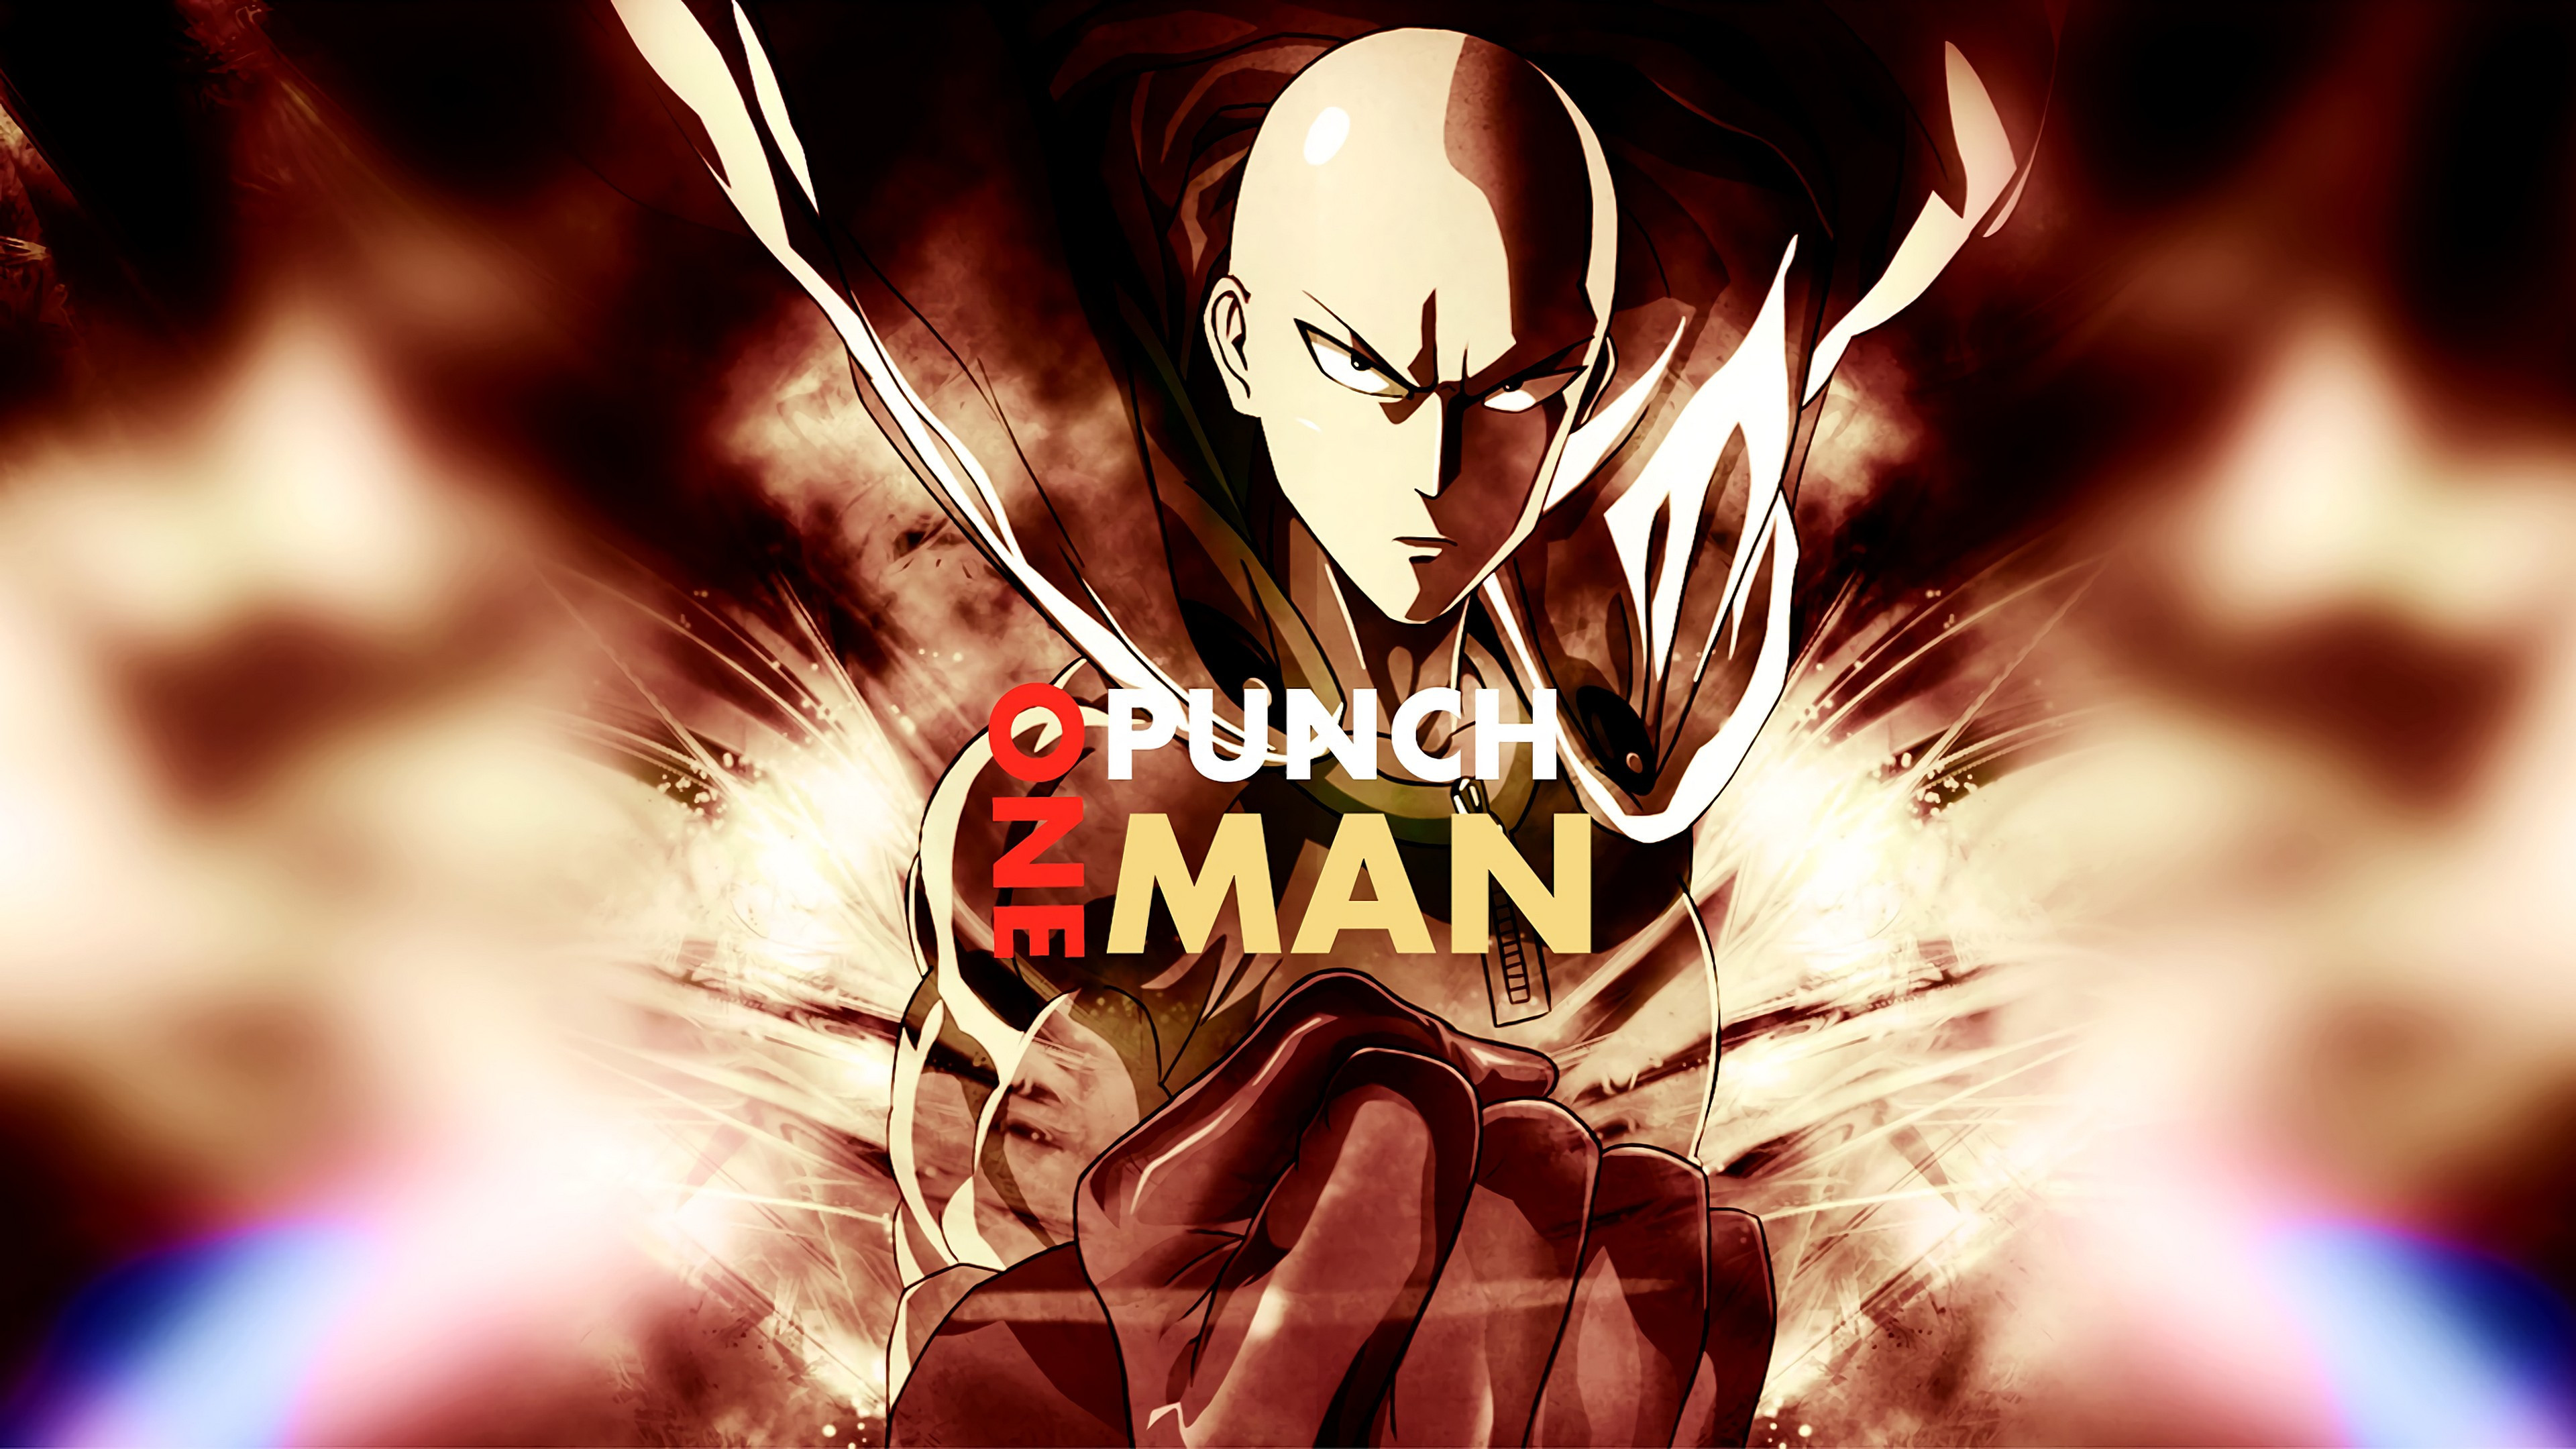 One Punch Man Season 3 Release Date Leaked Anime Series will Premiere in September 2020